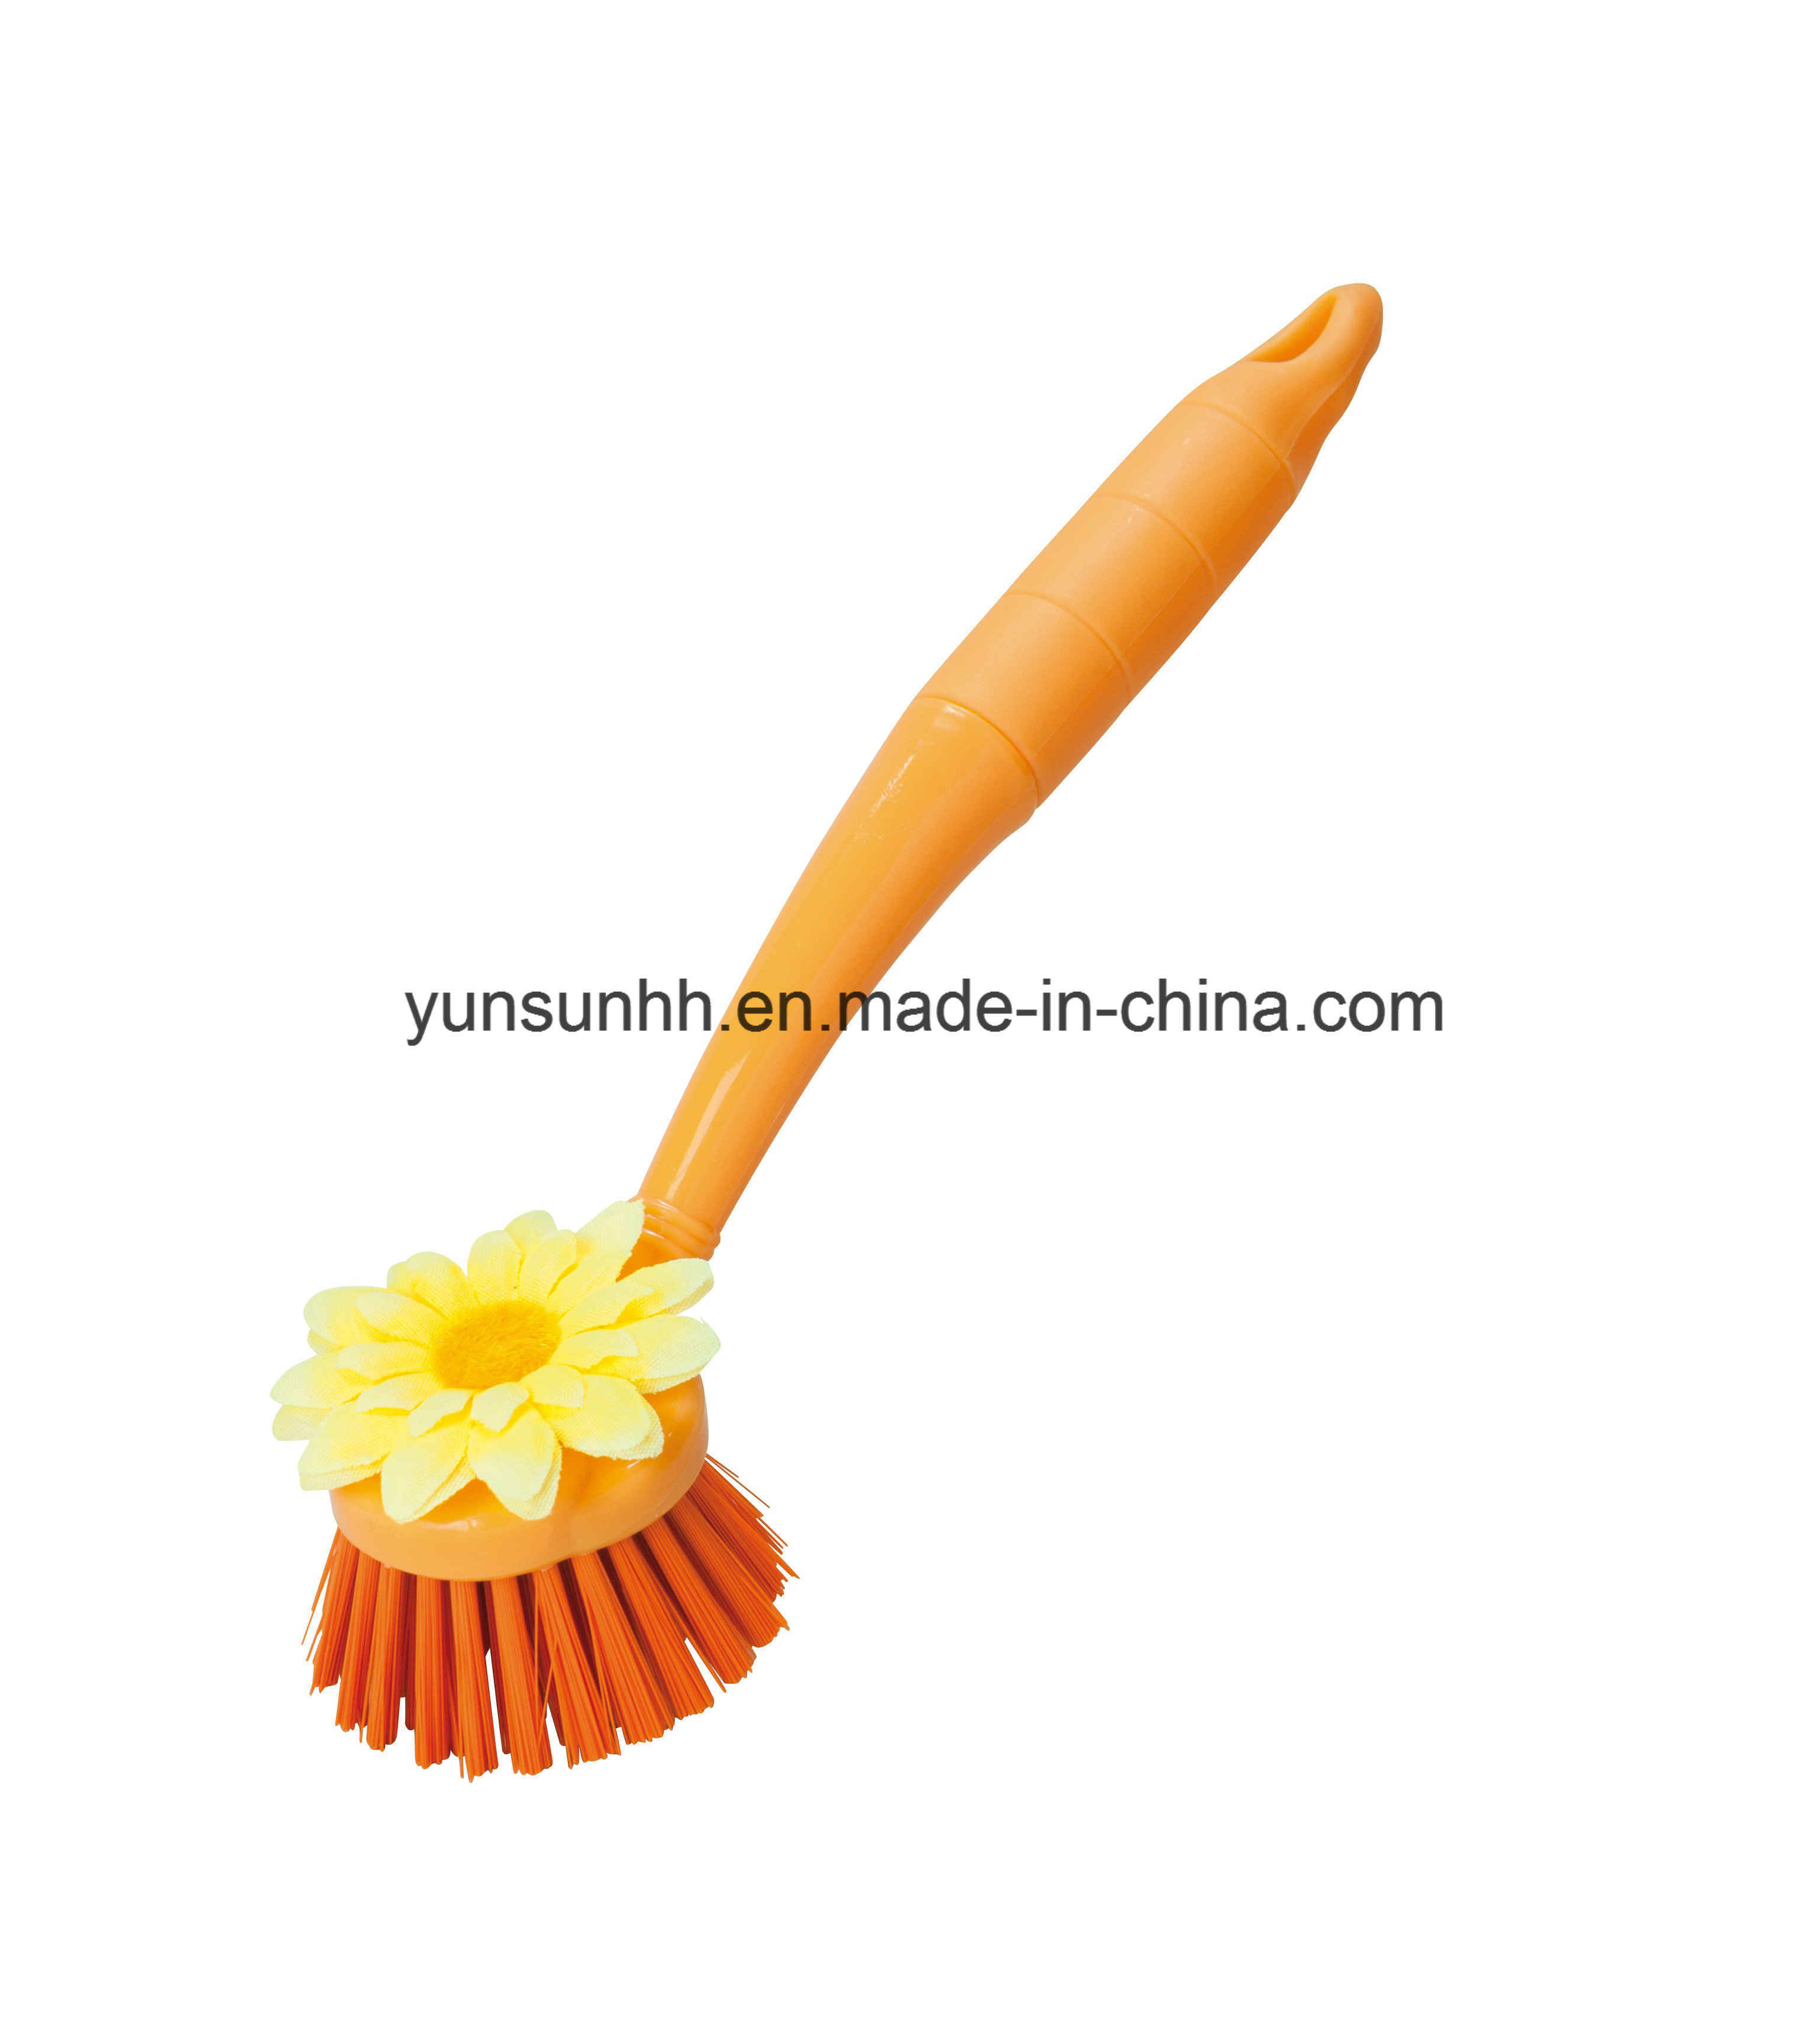 Flower Brush /Cleaning Dish Brush/Broom, Cleaning Tool